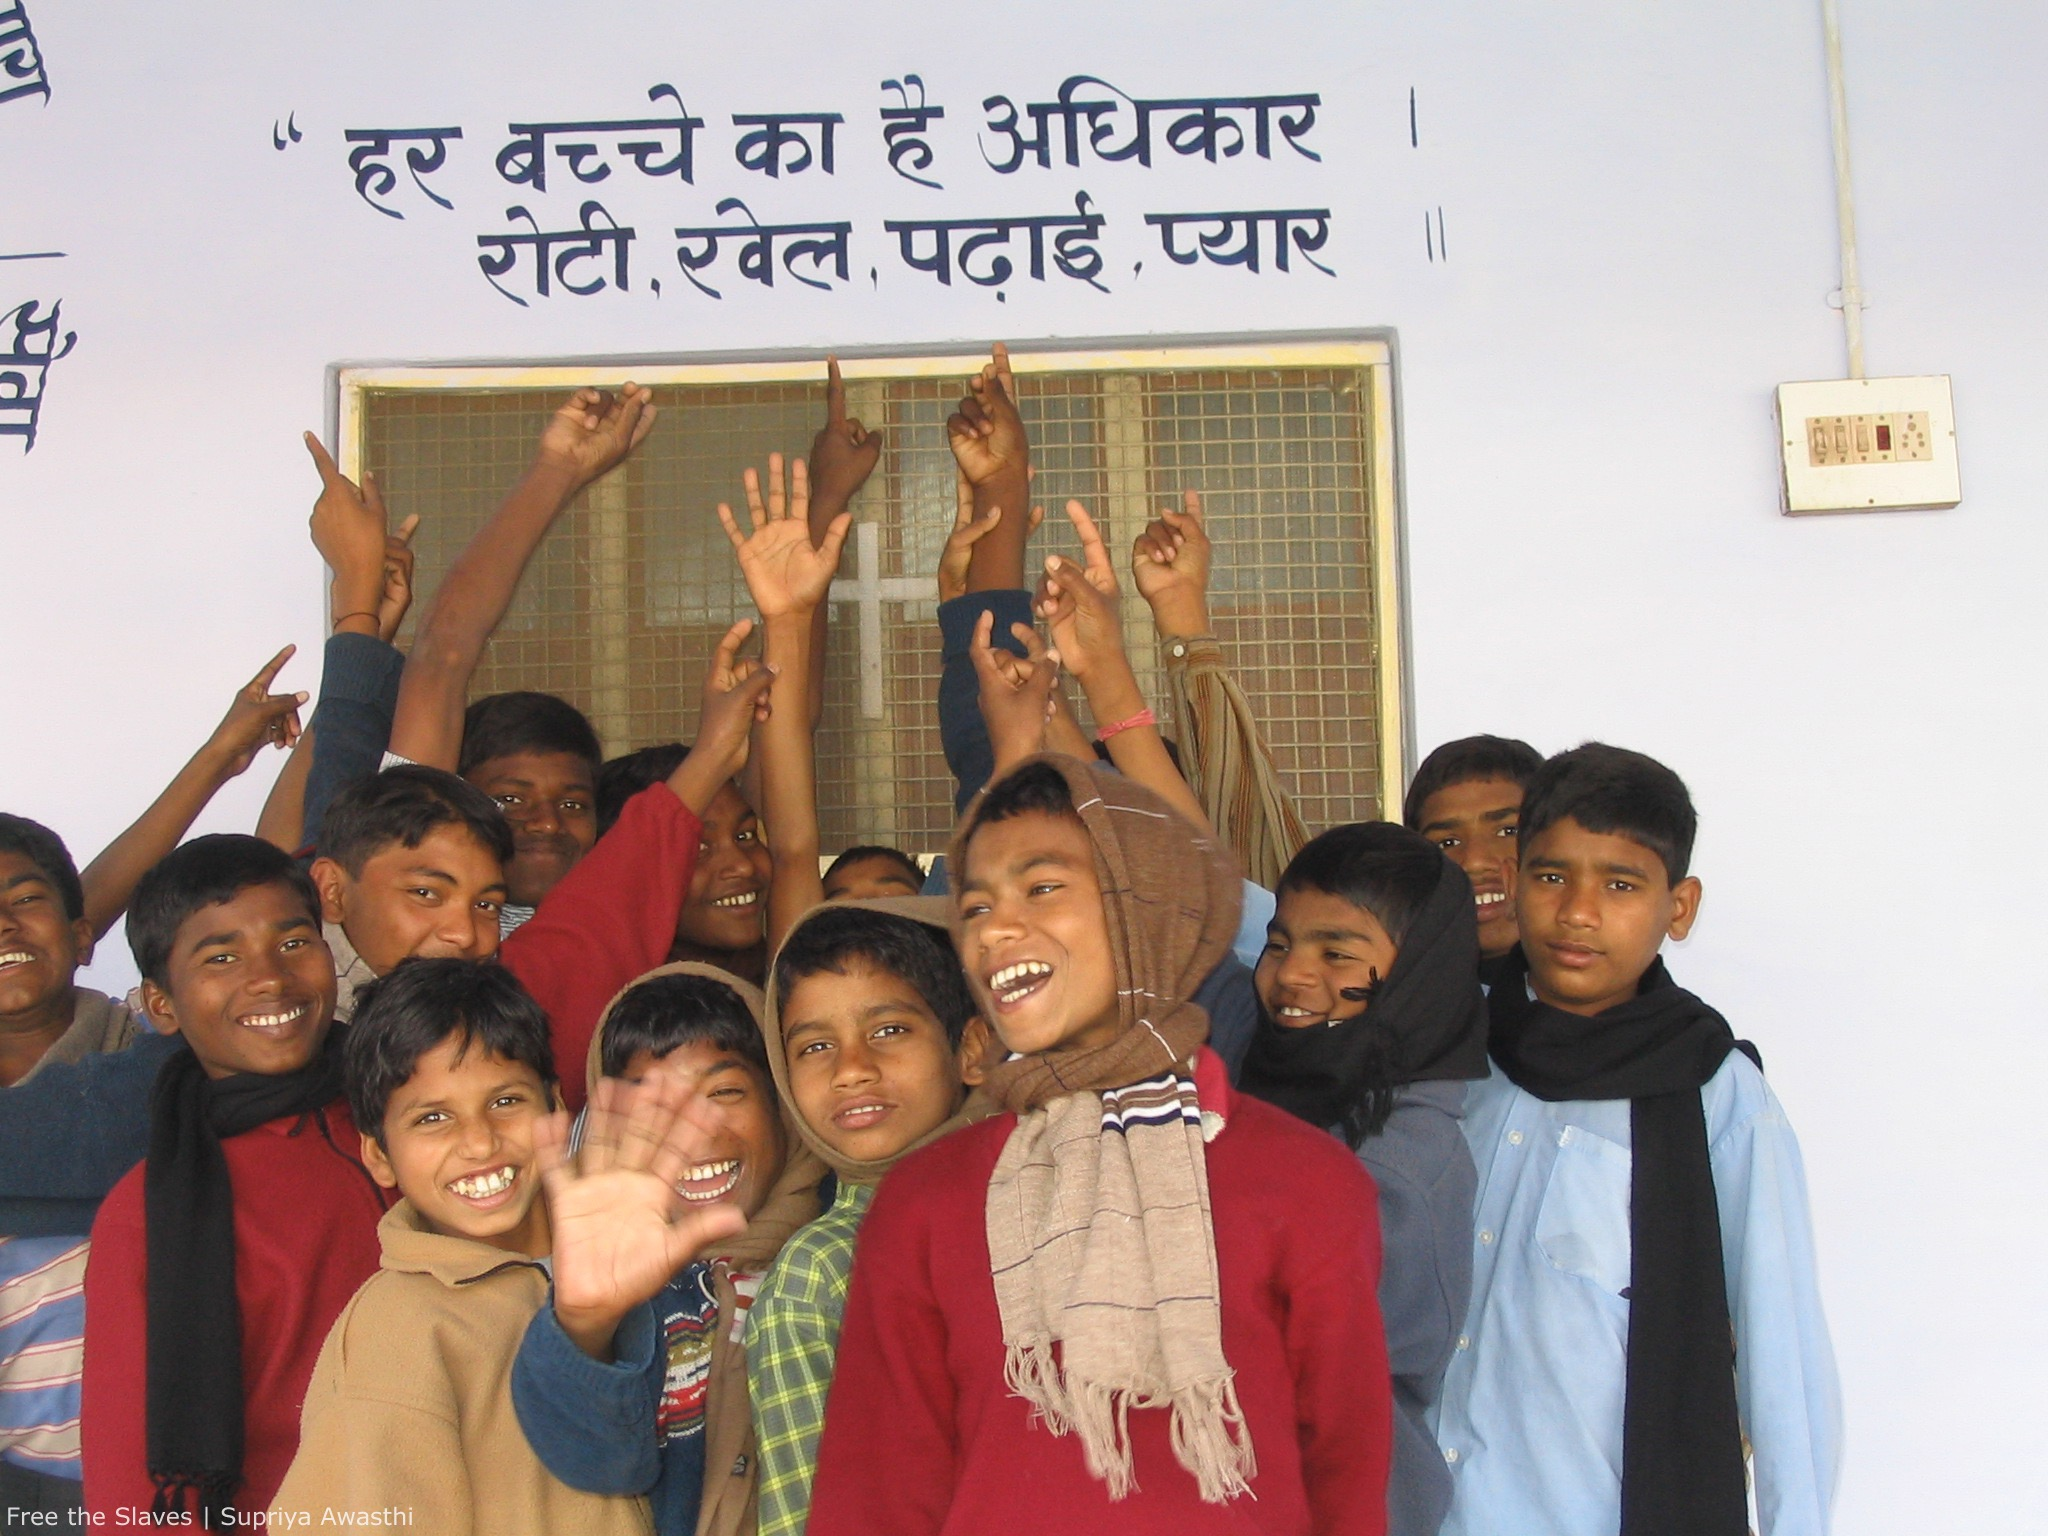 Children with slogan